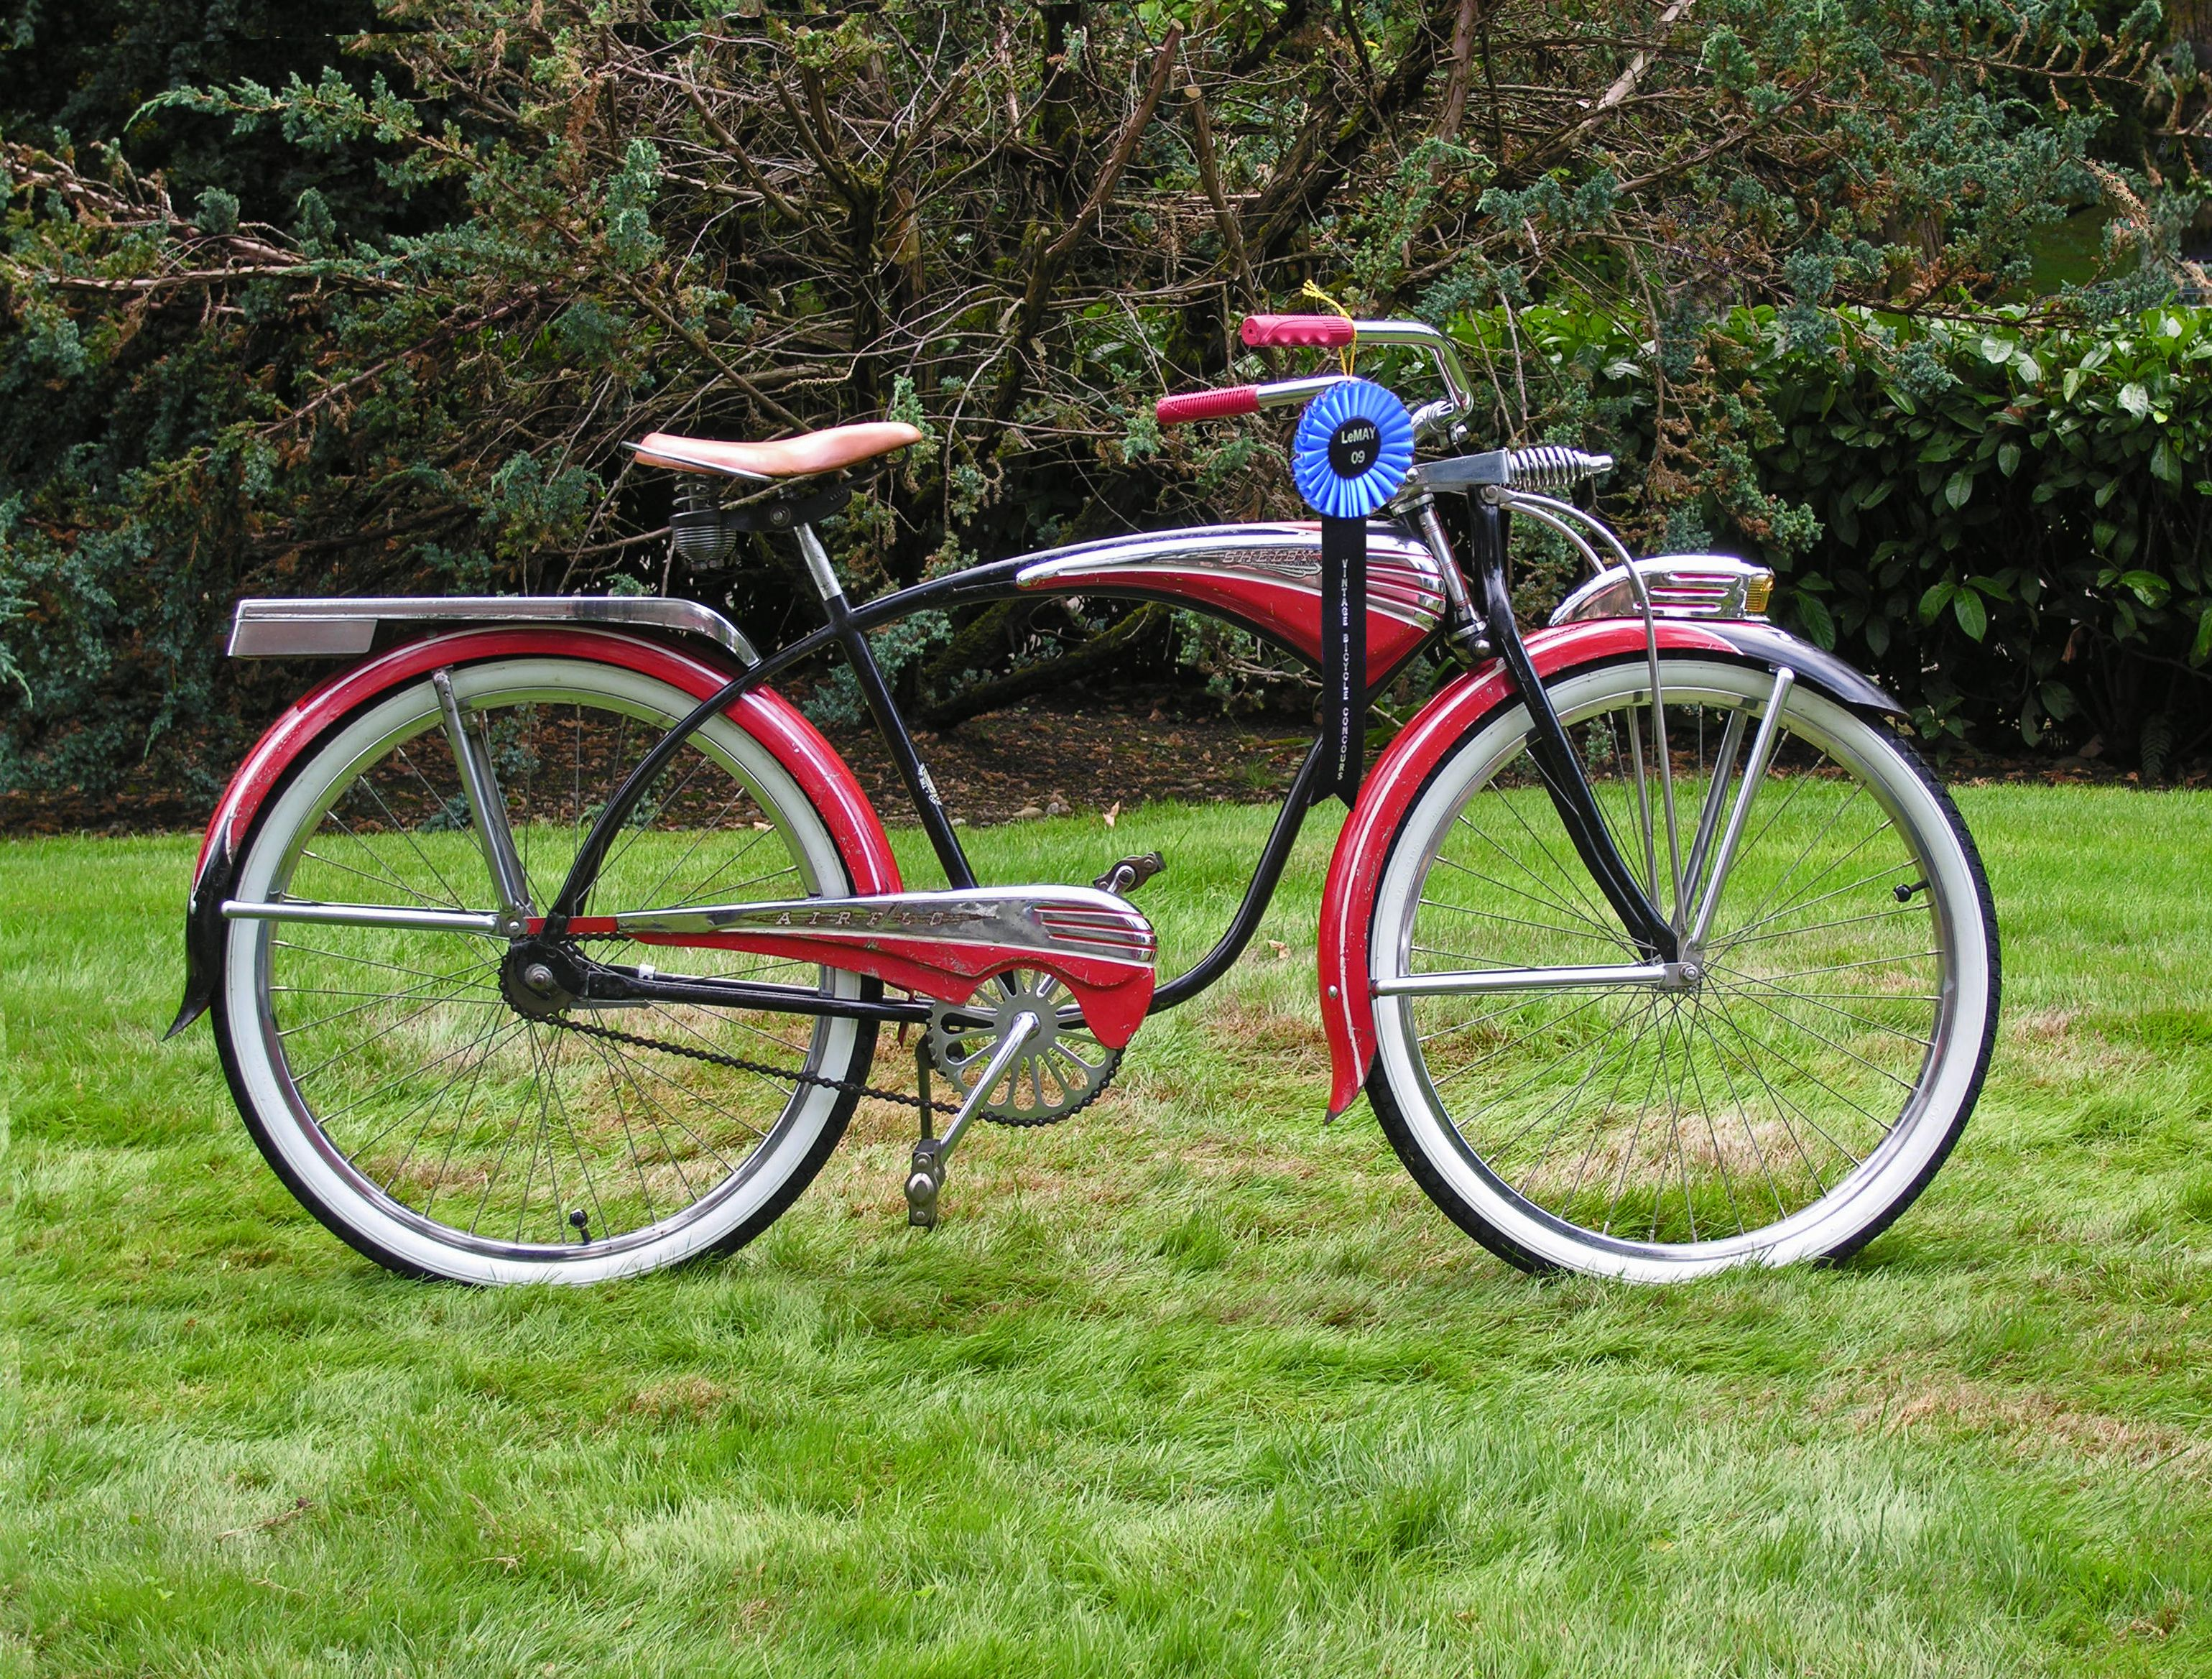 Bicycle Display Puyallup February 2012 1954 Amf Shelby Airflo Vintage Bicycles Bicycle Cool Bicycles